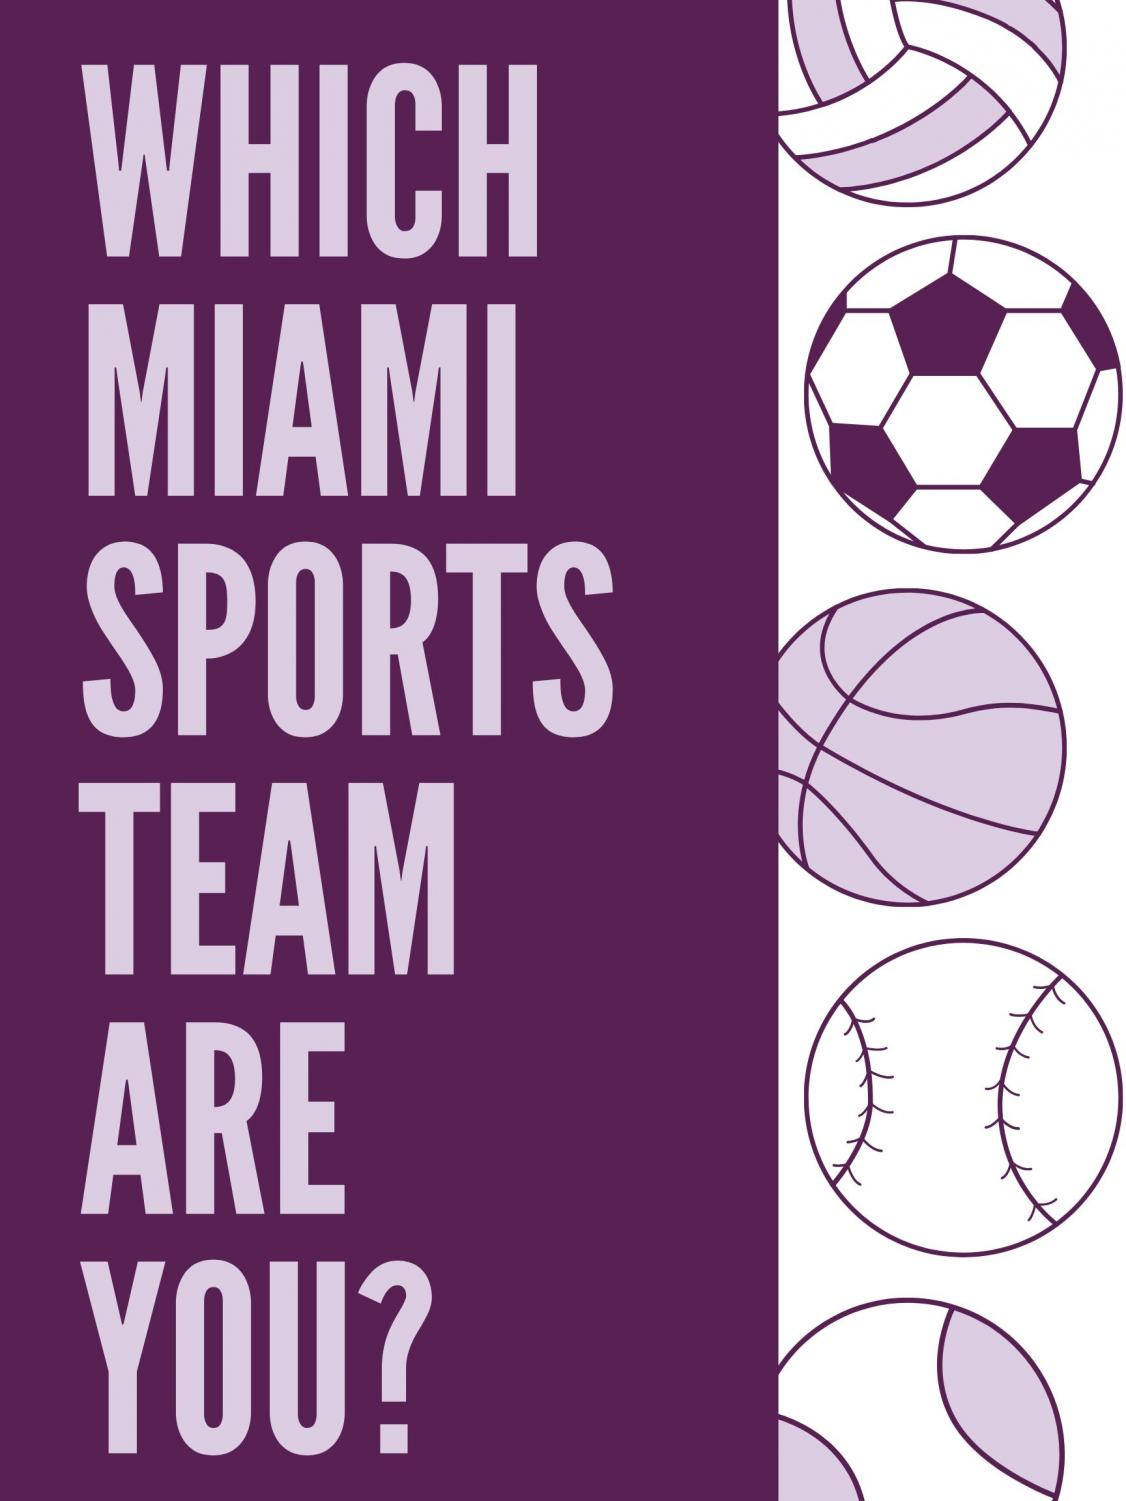 Which Miami sports team do you think you are?